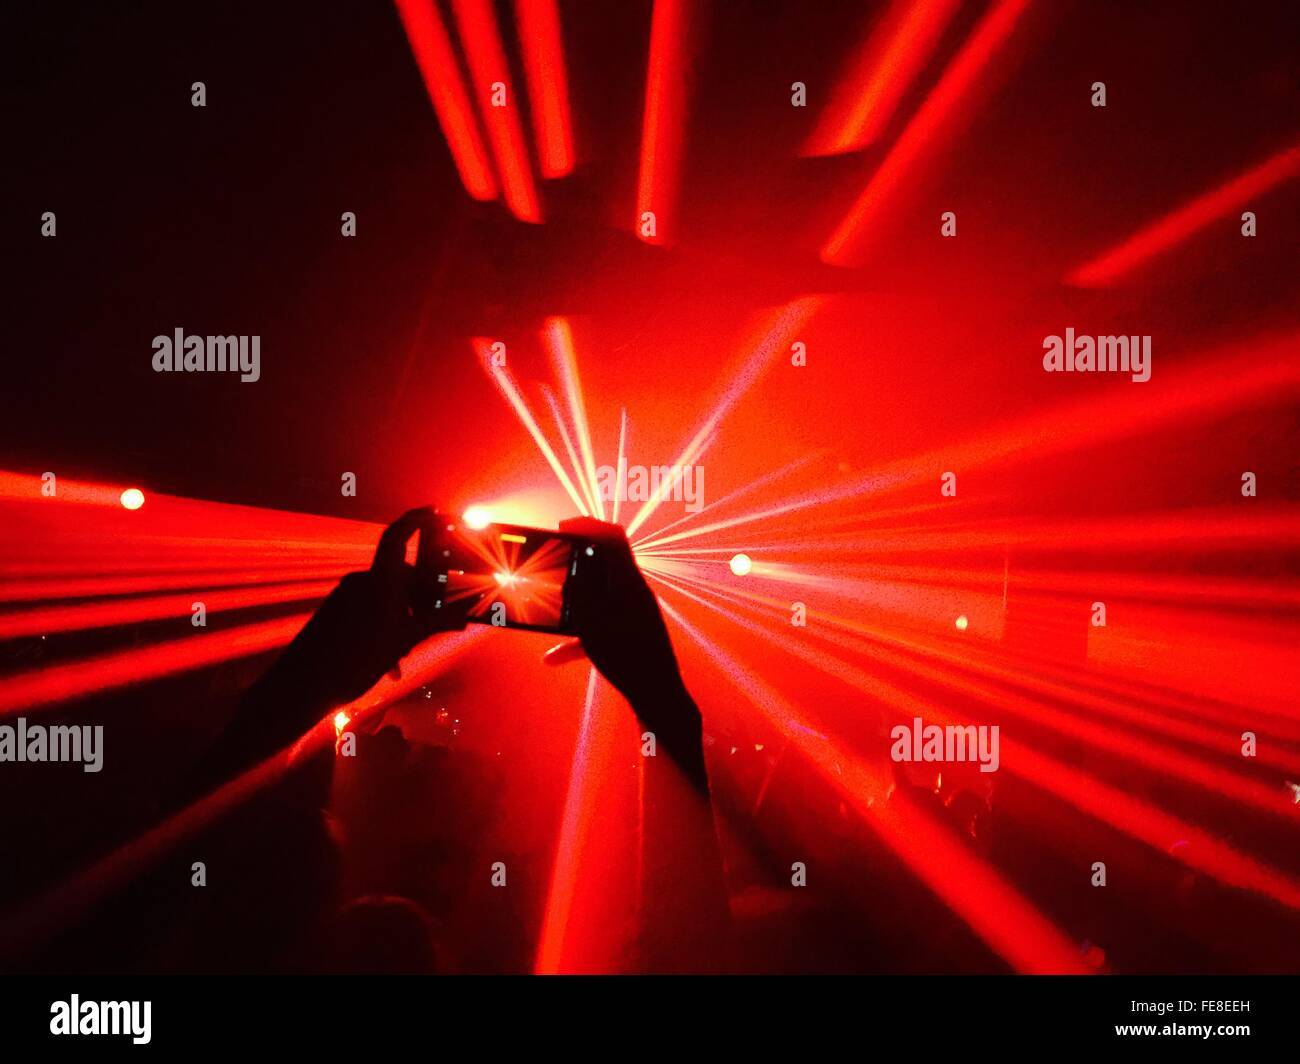 Person Taking Picture At Night Club Party - Stock Image